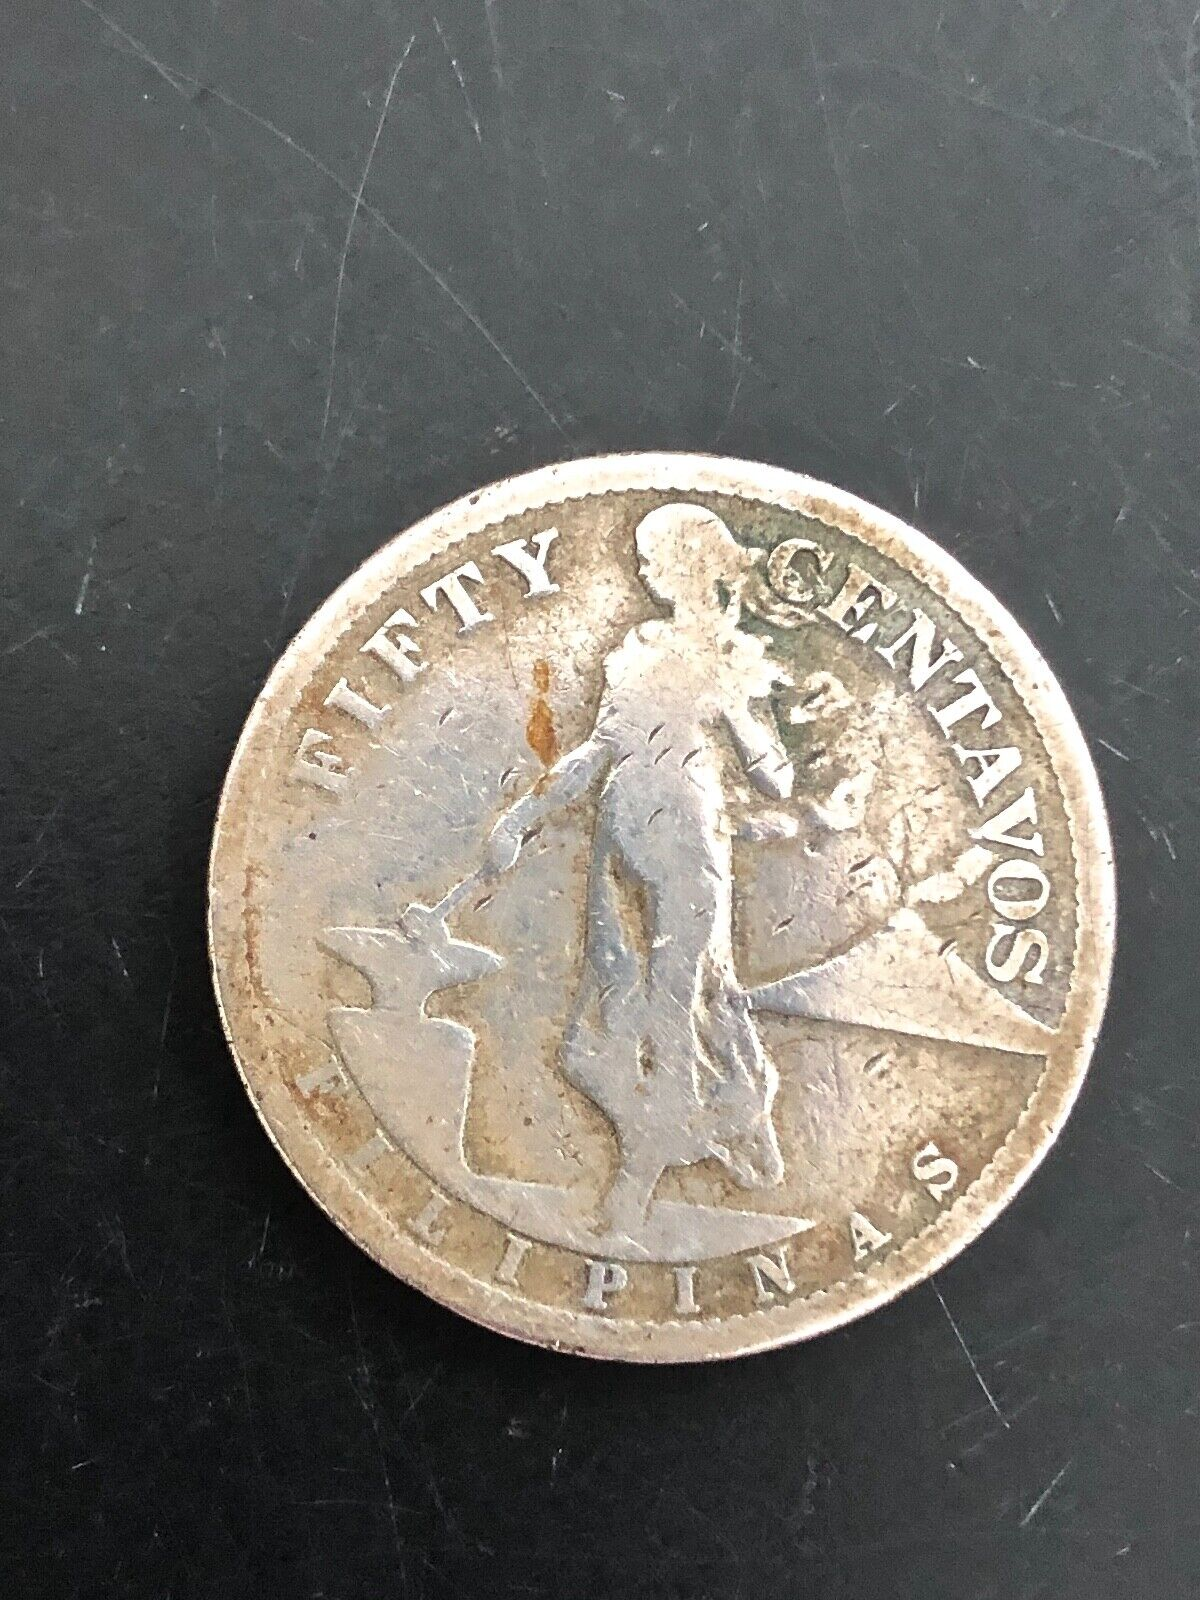 OLD SILVER COIN Lowball 1907 Philippines Fifty Centavos  - $0.99